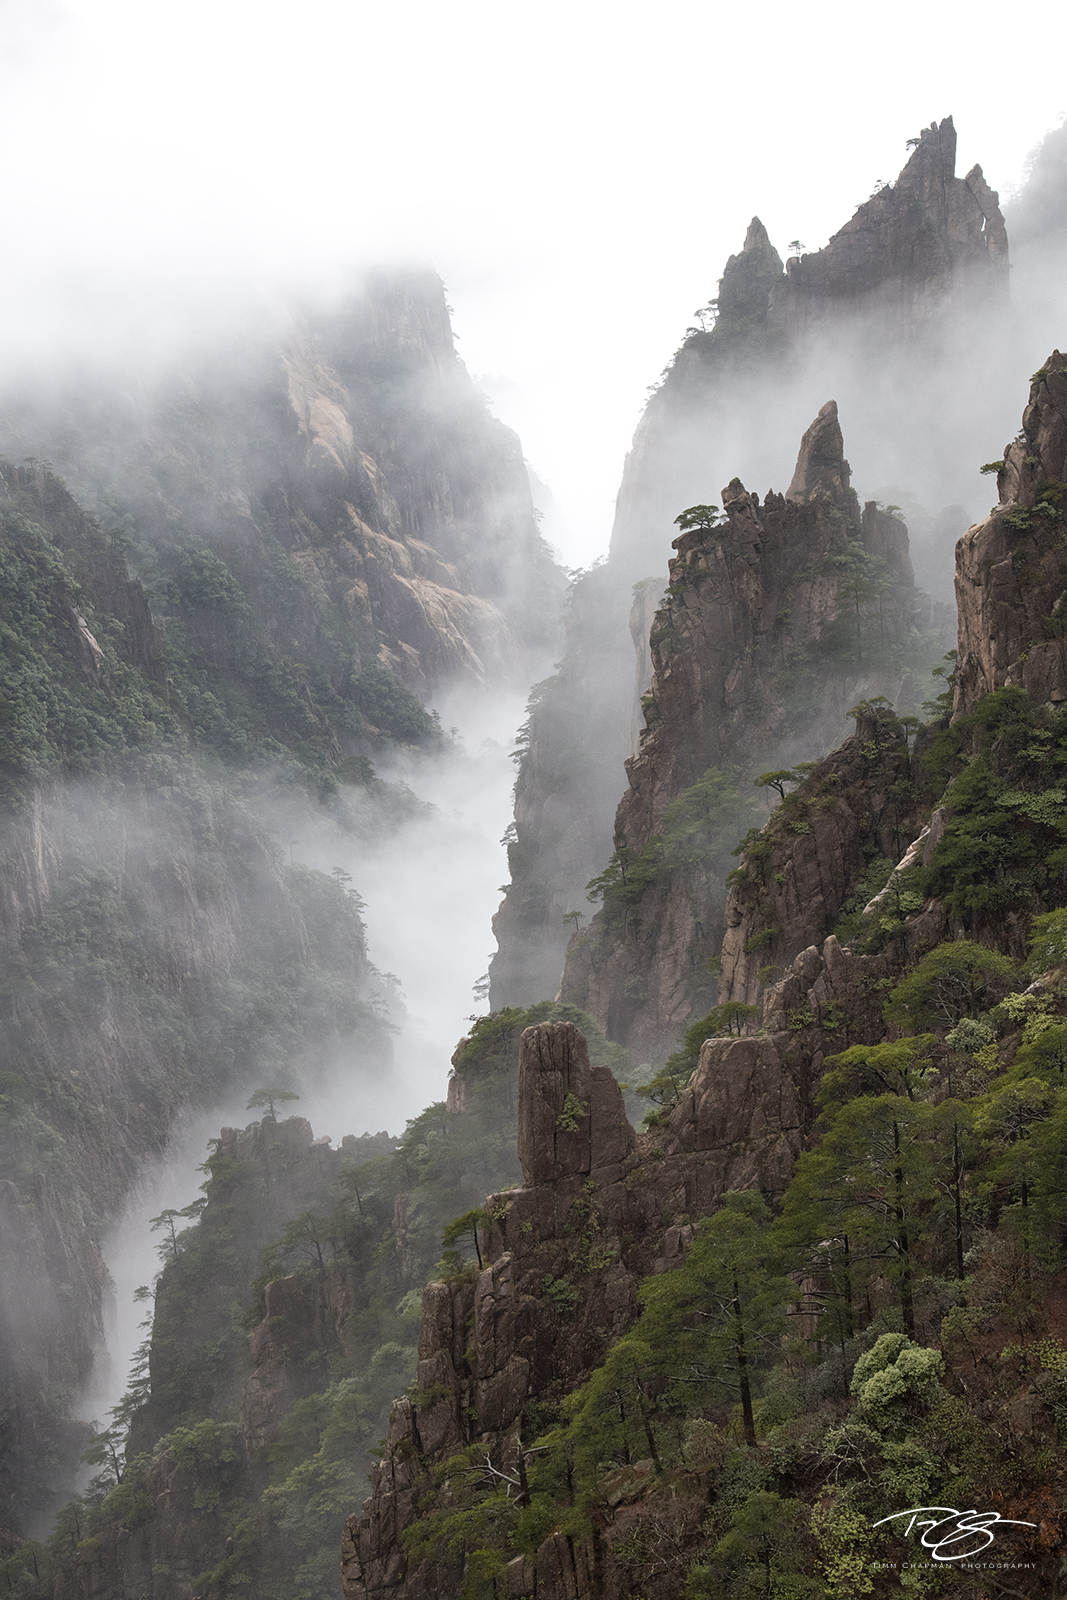 Mist slowly dissipates to unveil the valley surrounding the Huangshan Mountains